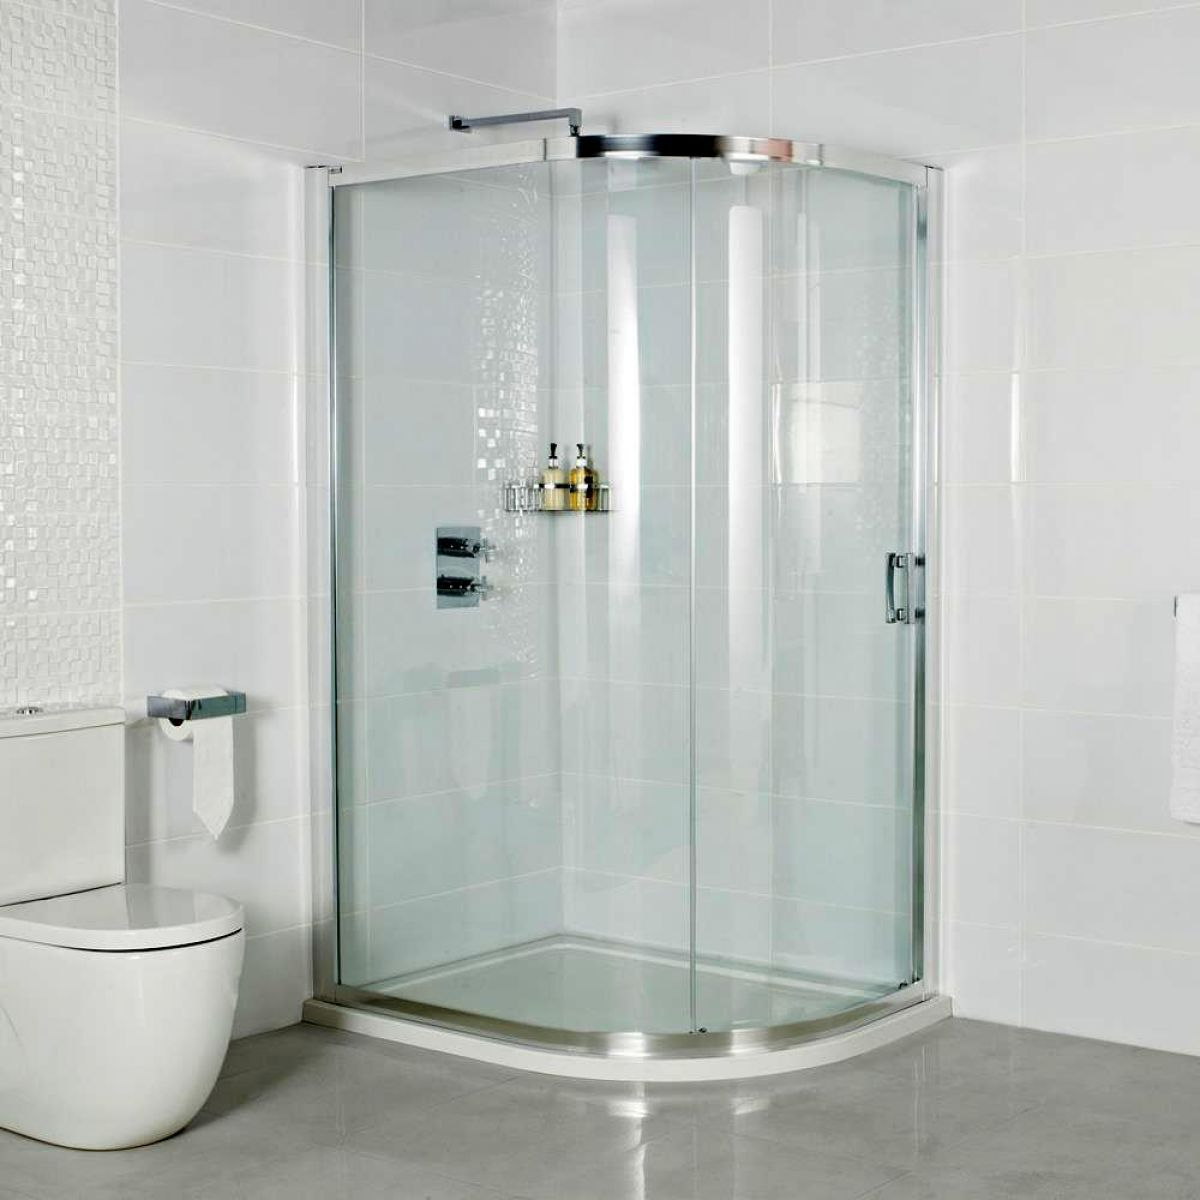 Roman Embrace Single Door Offset Quadrant Shower Enclosure